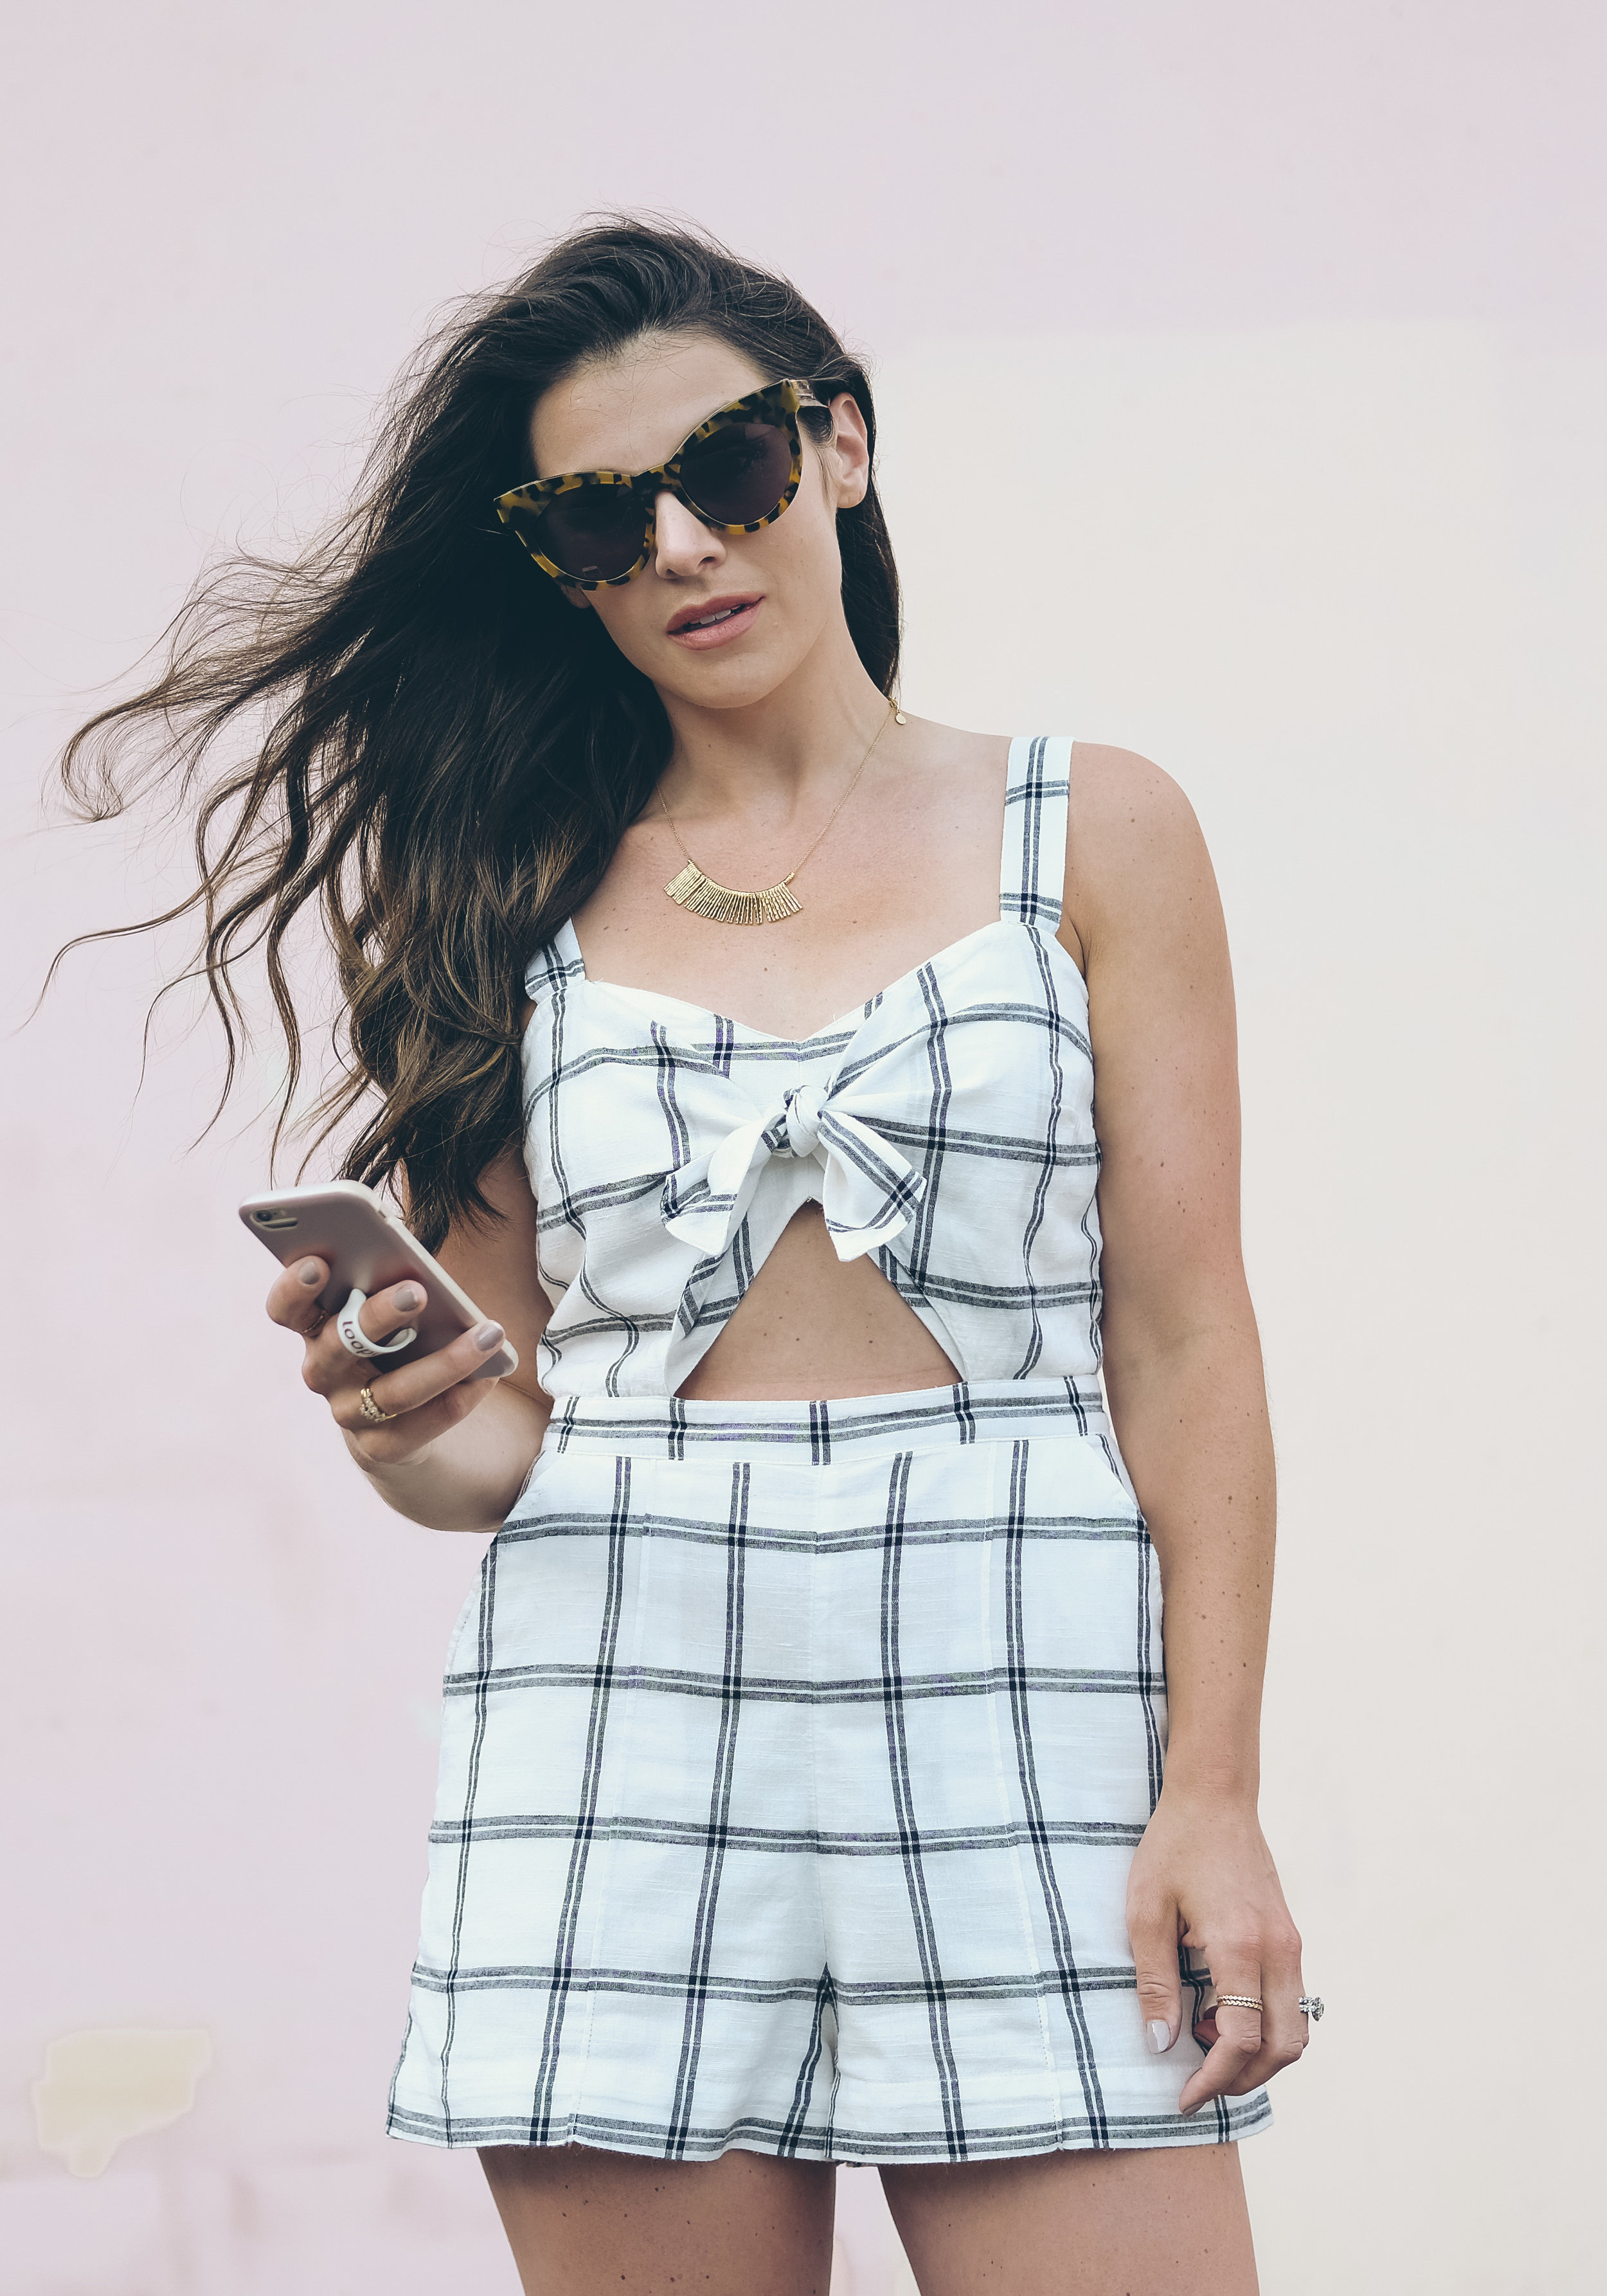 Abercrombie and Fitch Knot Front Romper, cute summer outfit.